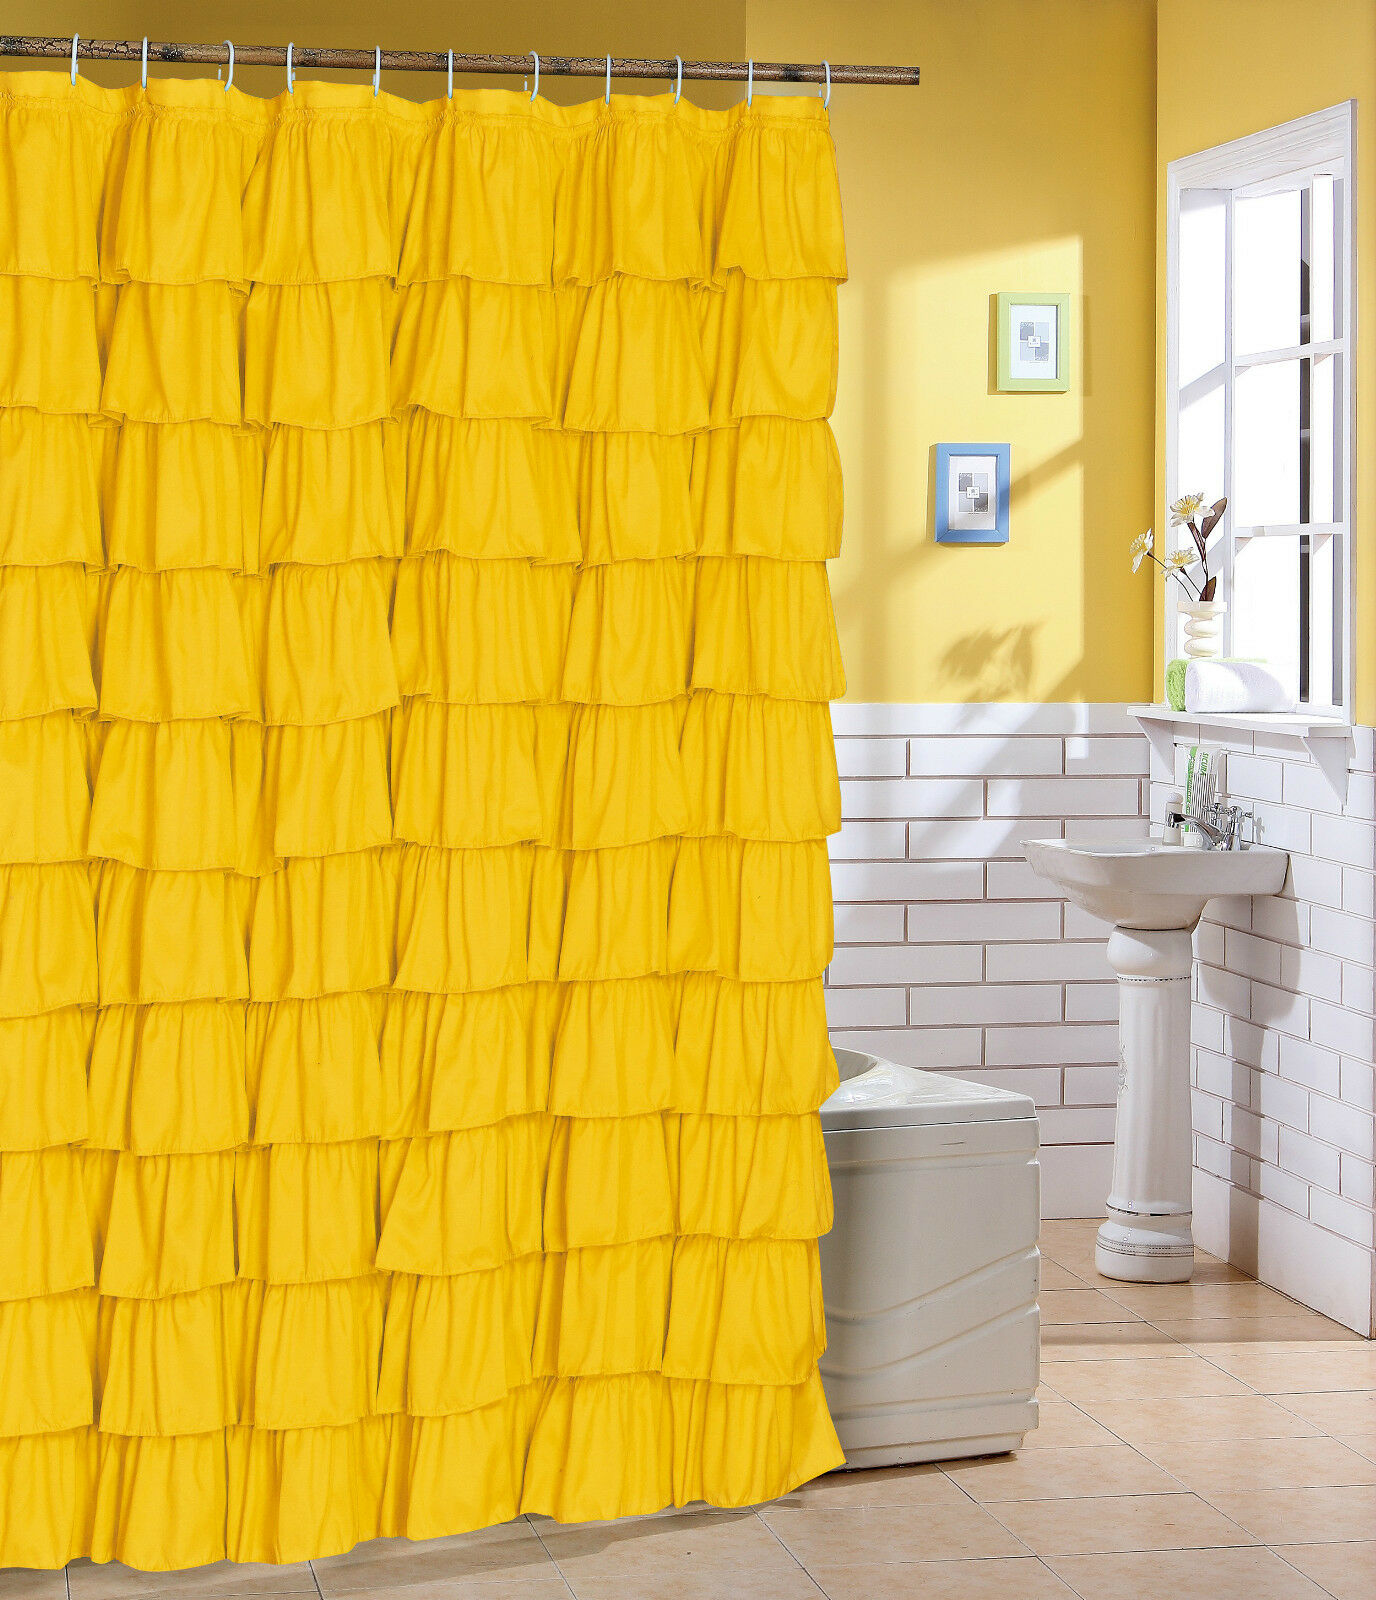 Fabric ruffle shower curtain color yellow flamenco shower curtain